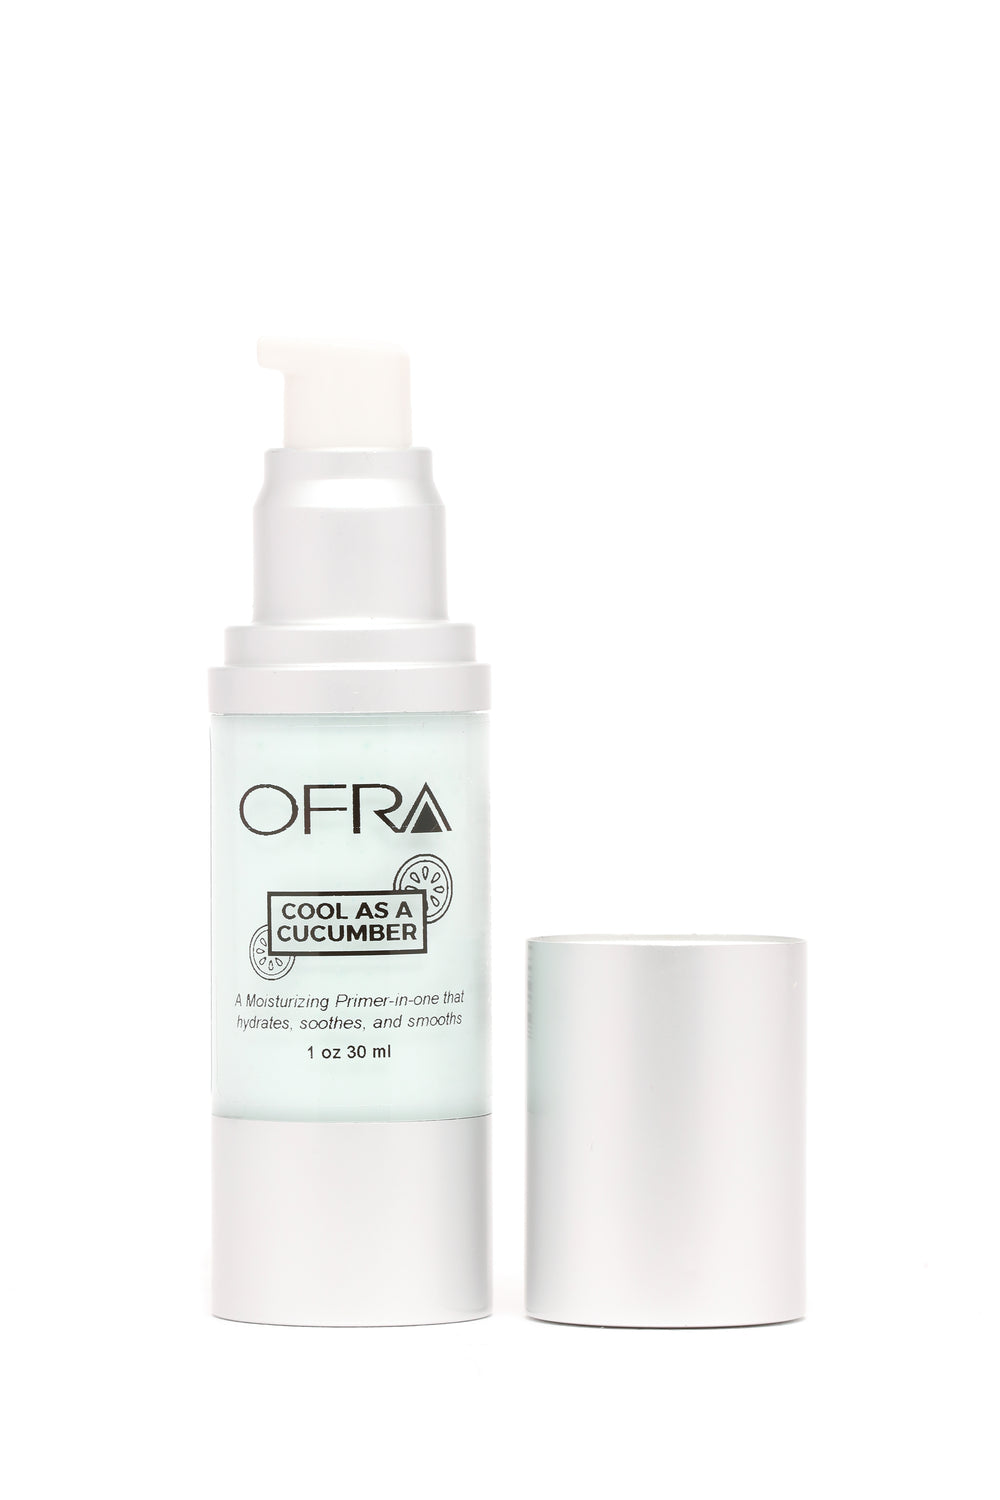 Ofra Cool As A Cucumber Primer